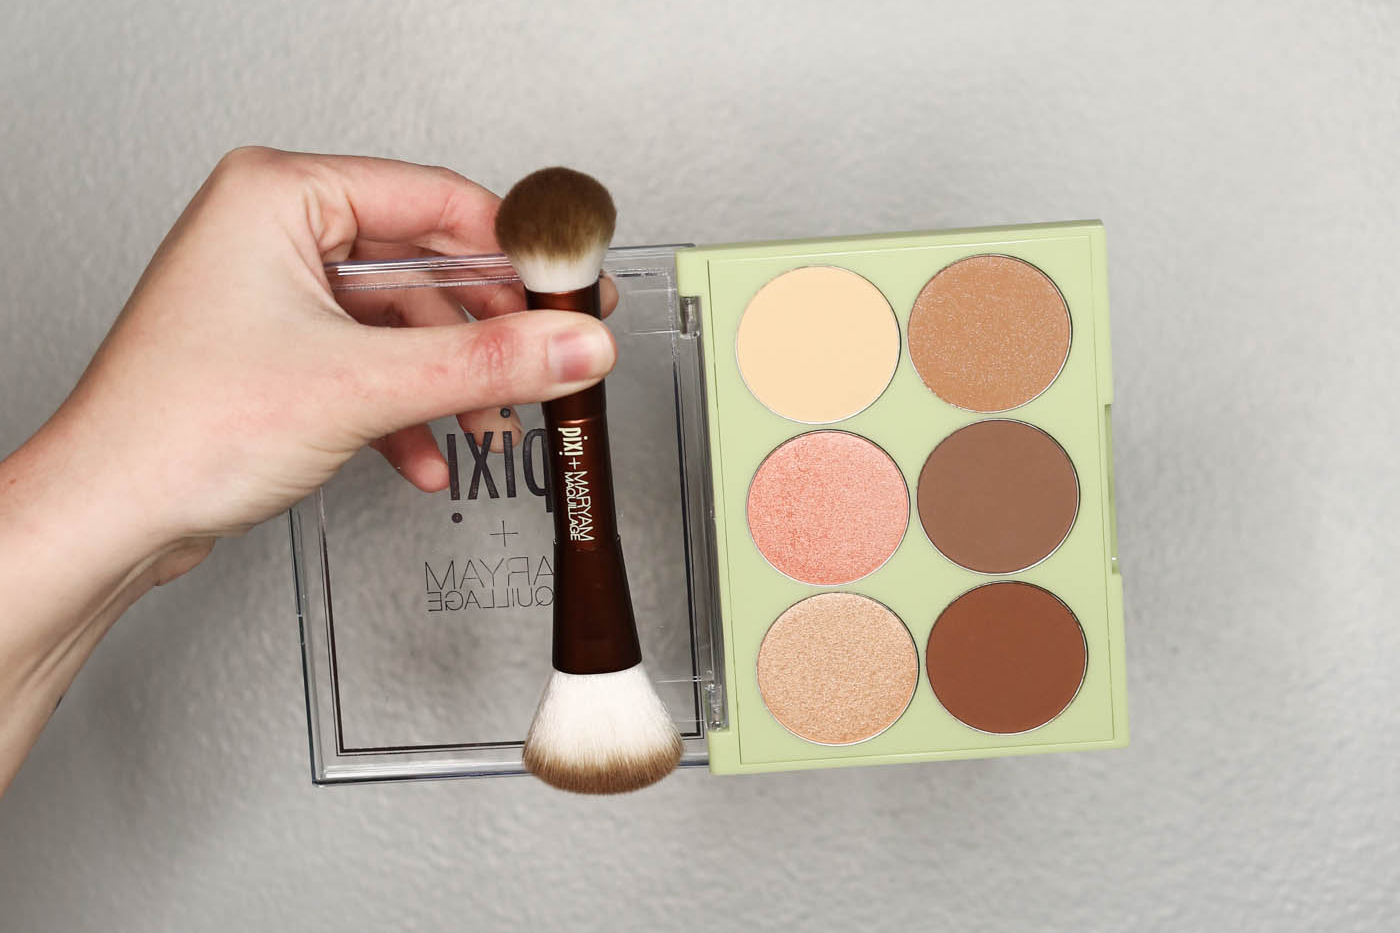 pixi-maryam-maquillage-strobe-and-sculpt